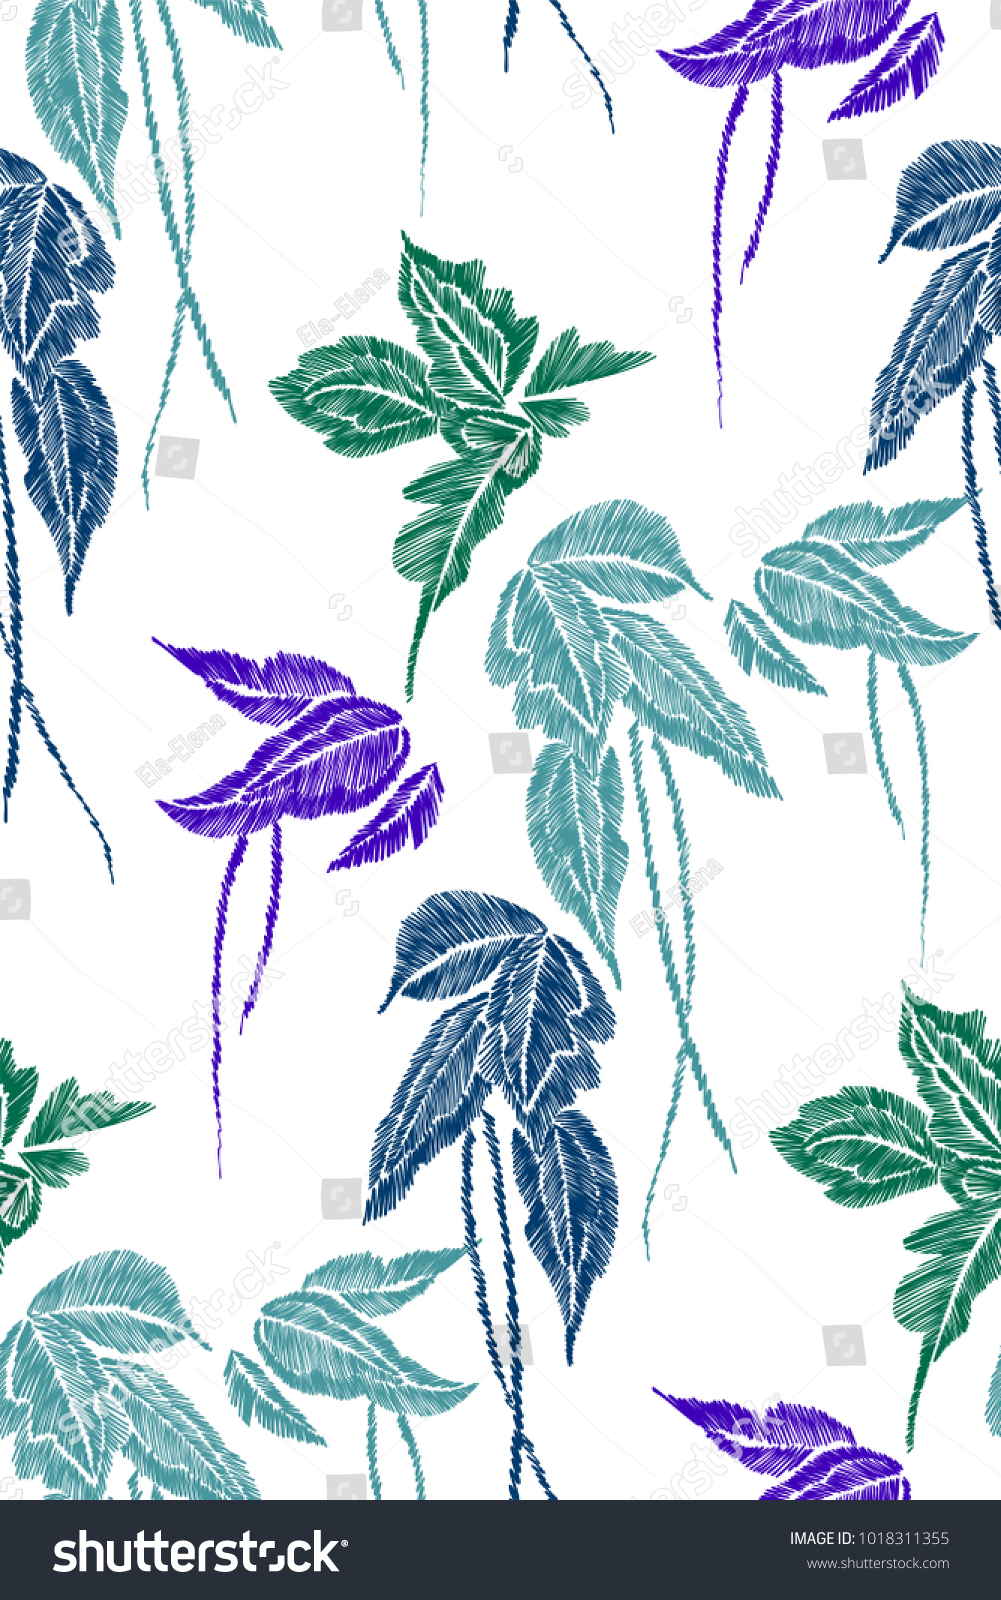 Tropical Leaves Seamless Background Pattern Vector Stock Vector Royalty Free 1018311355 Tropical leaves are the perfect way to transform your home into an island oasis and there are plenty of ways to do it! shutterstock